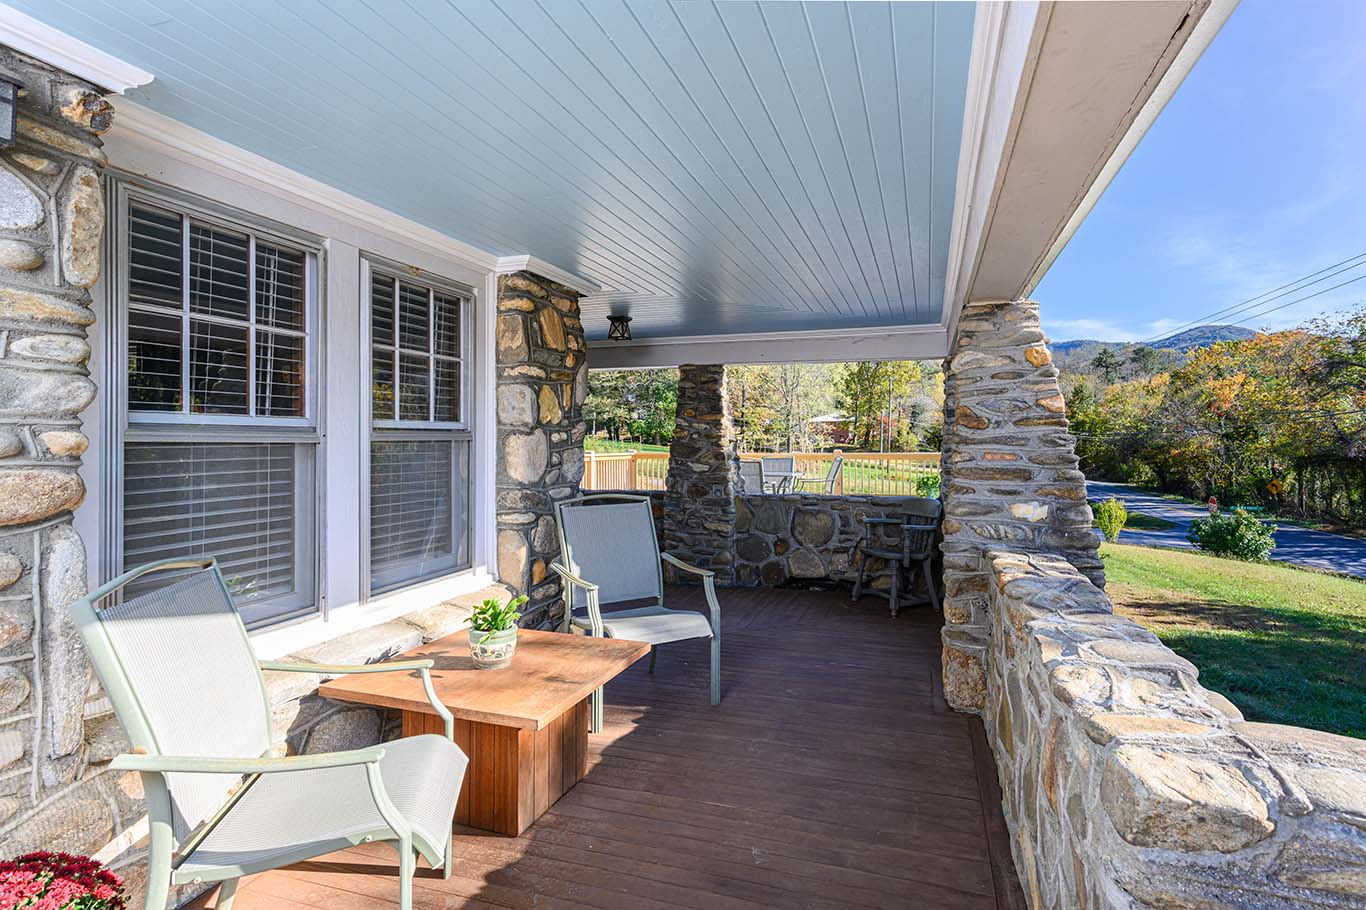 Expansive front porch with tongue and groove ceiling